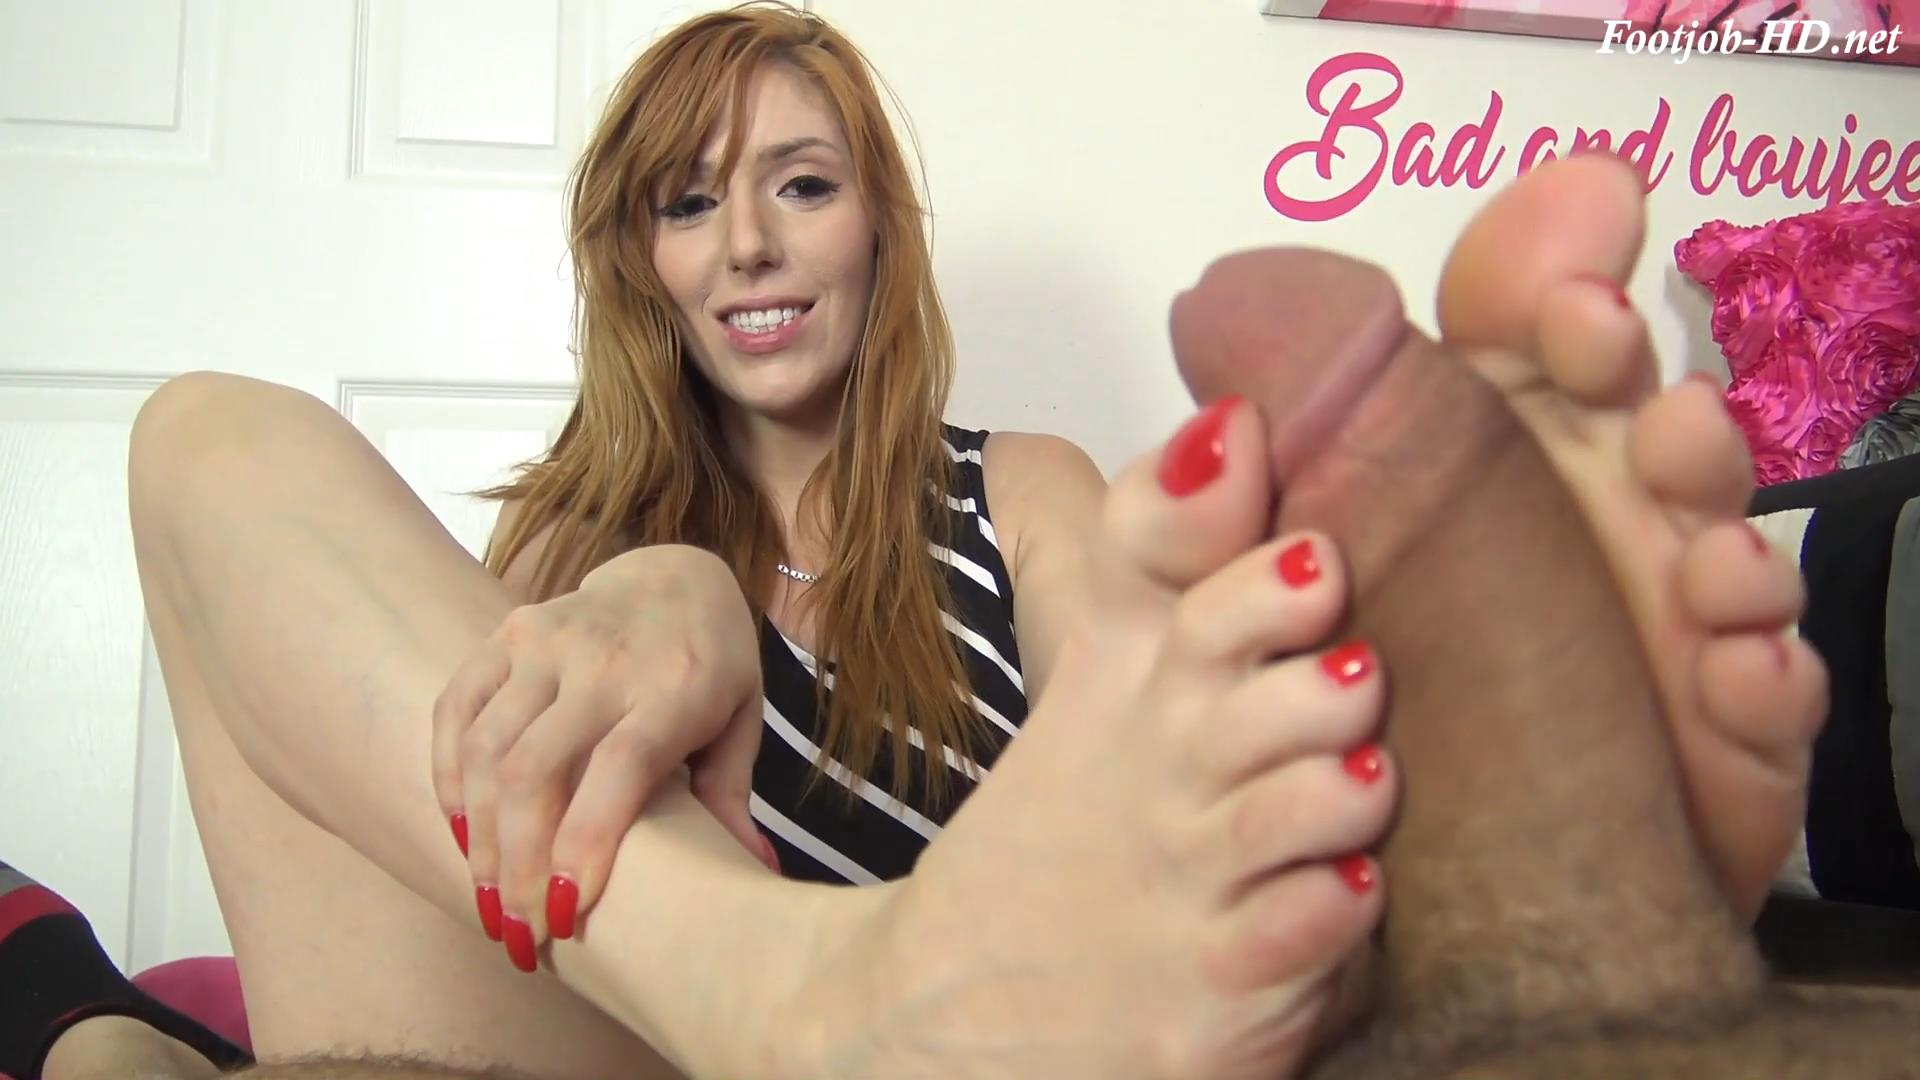 LAUREN PHILLIPS FOOT SLAVE, FOOT WORSHIP, FOOTJOB – The Foot Fantasy!!!